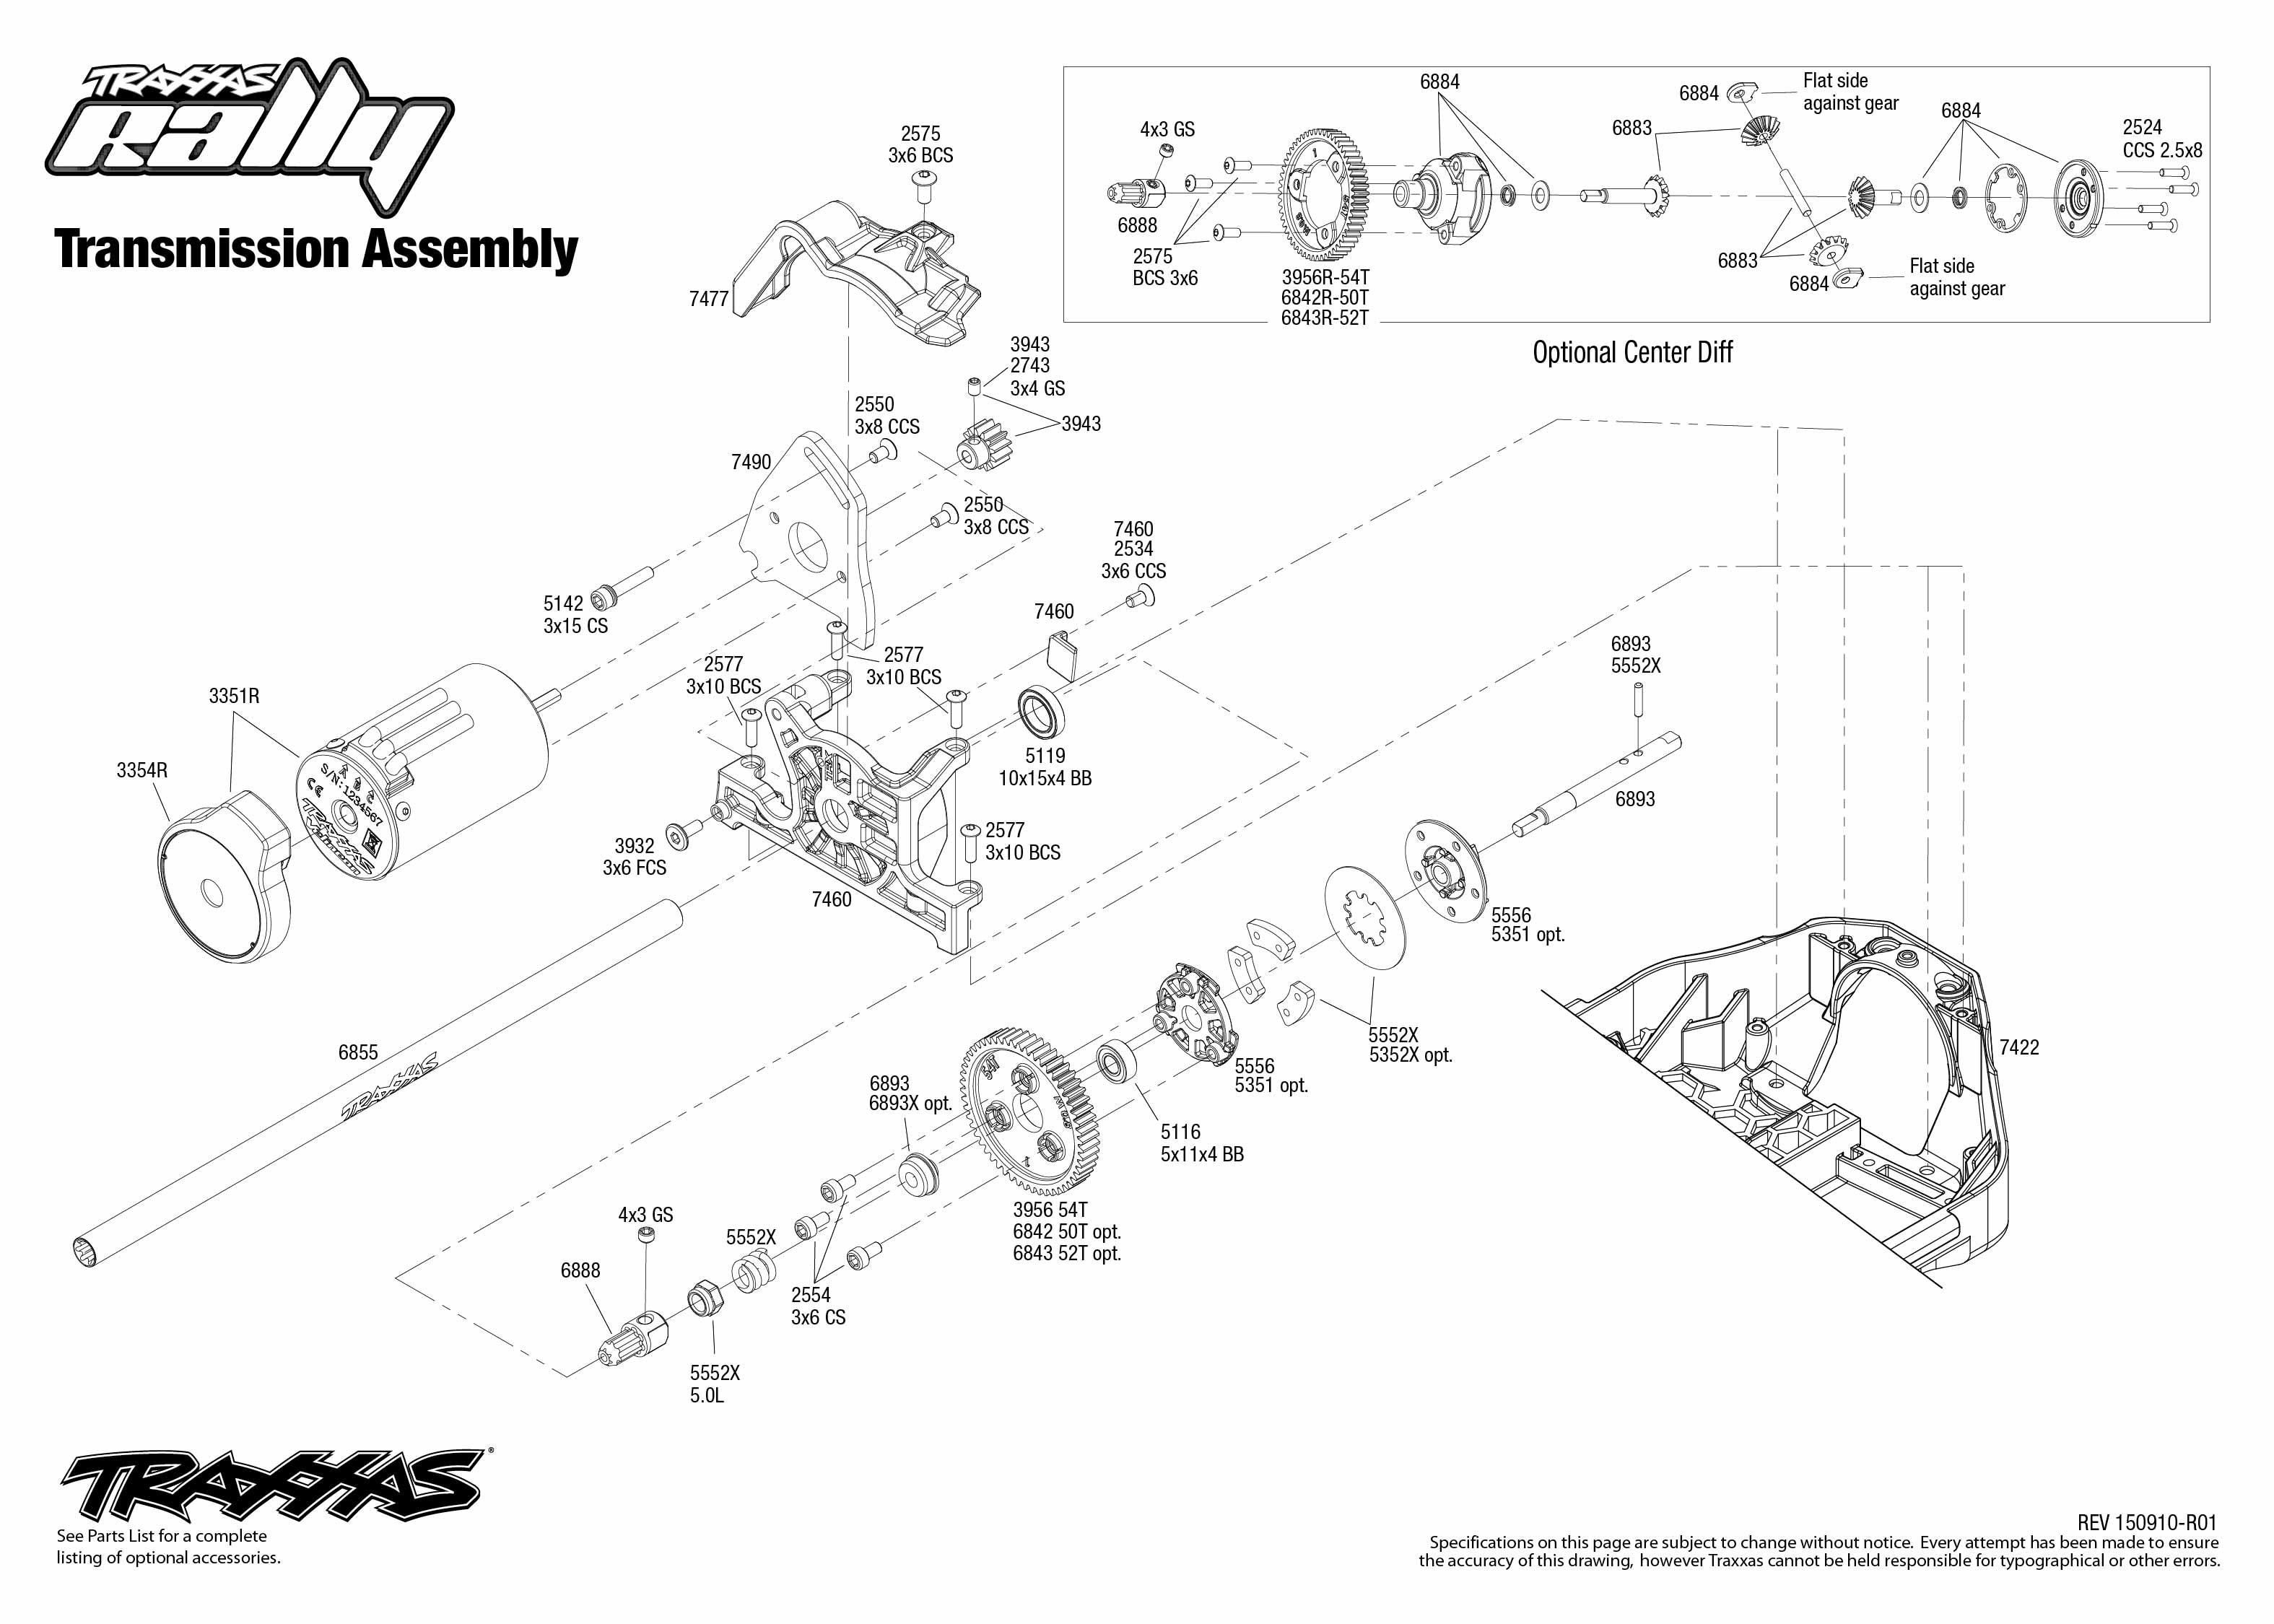 Rally 1 Transmission Assembly Exploded View